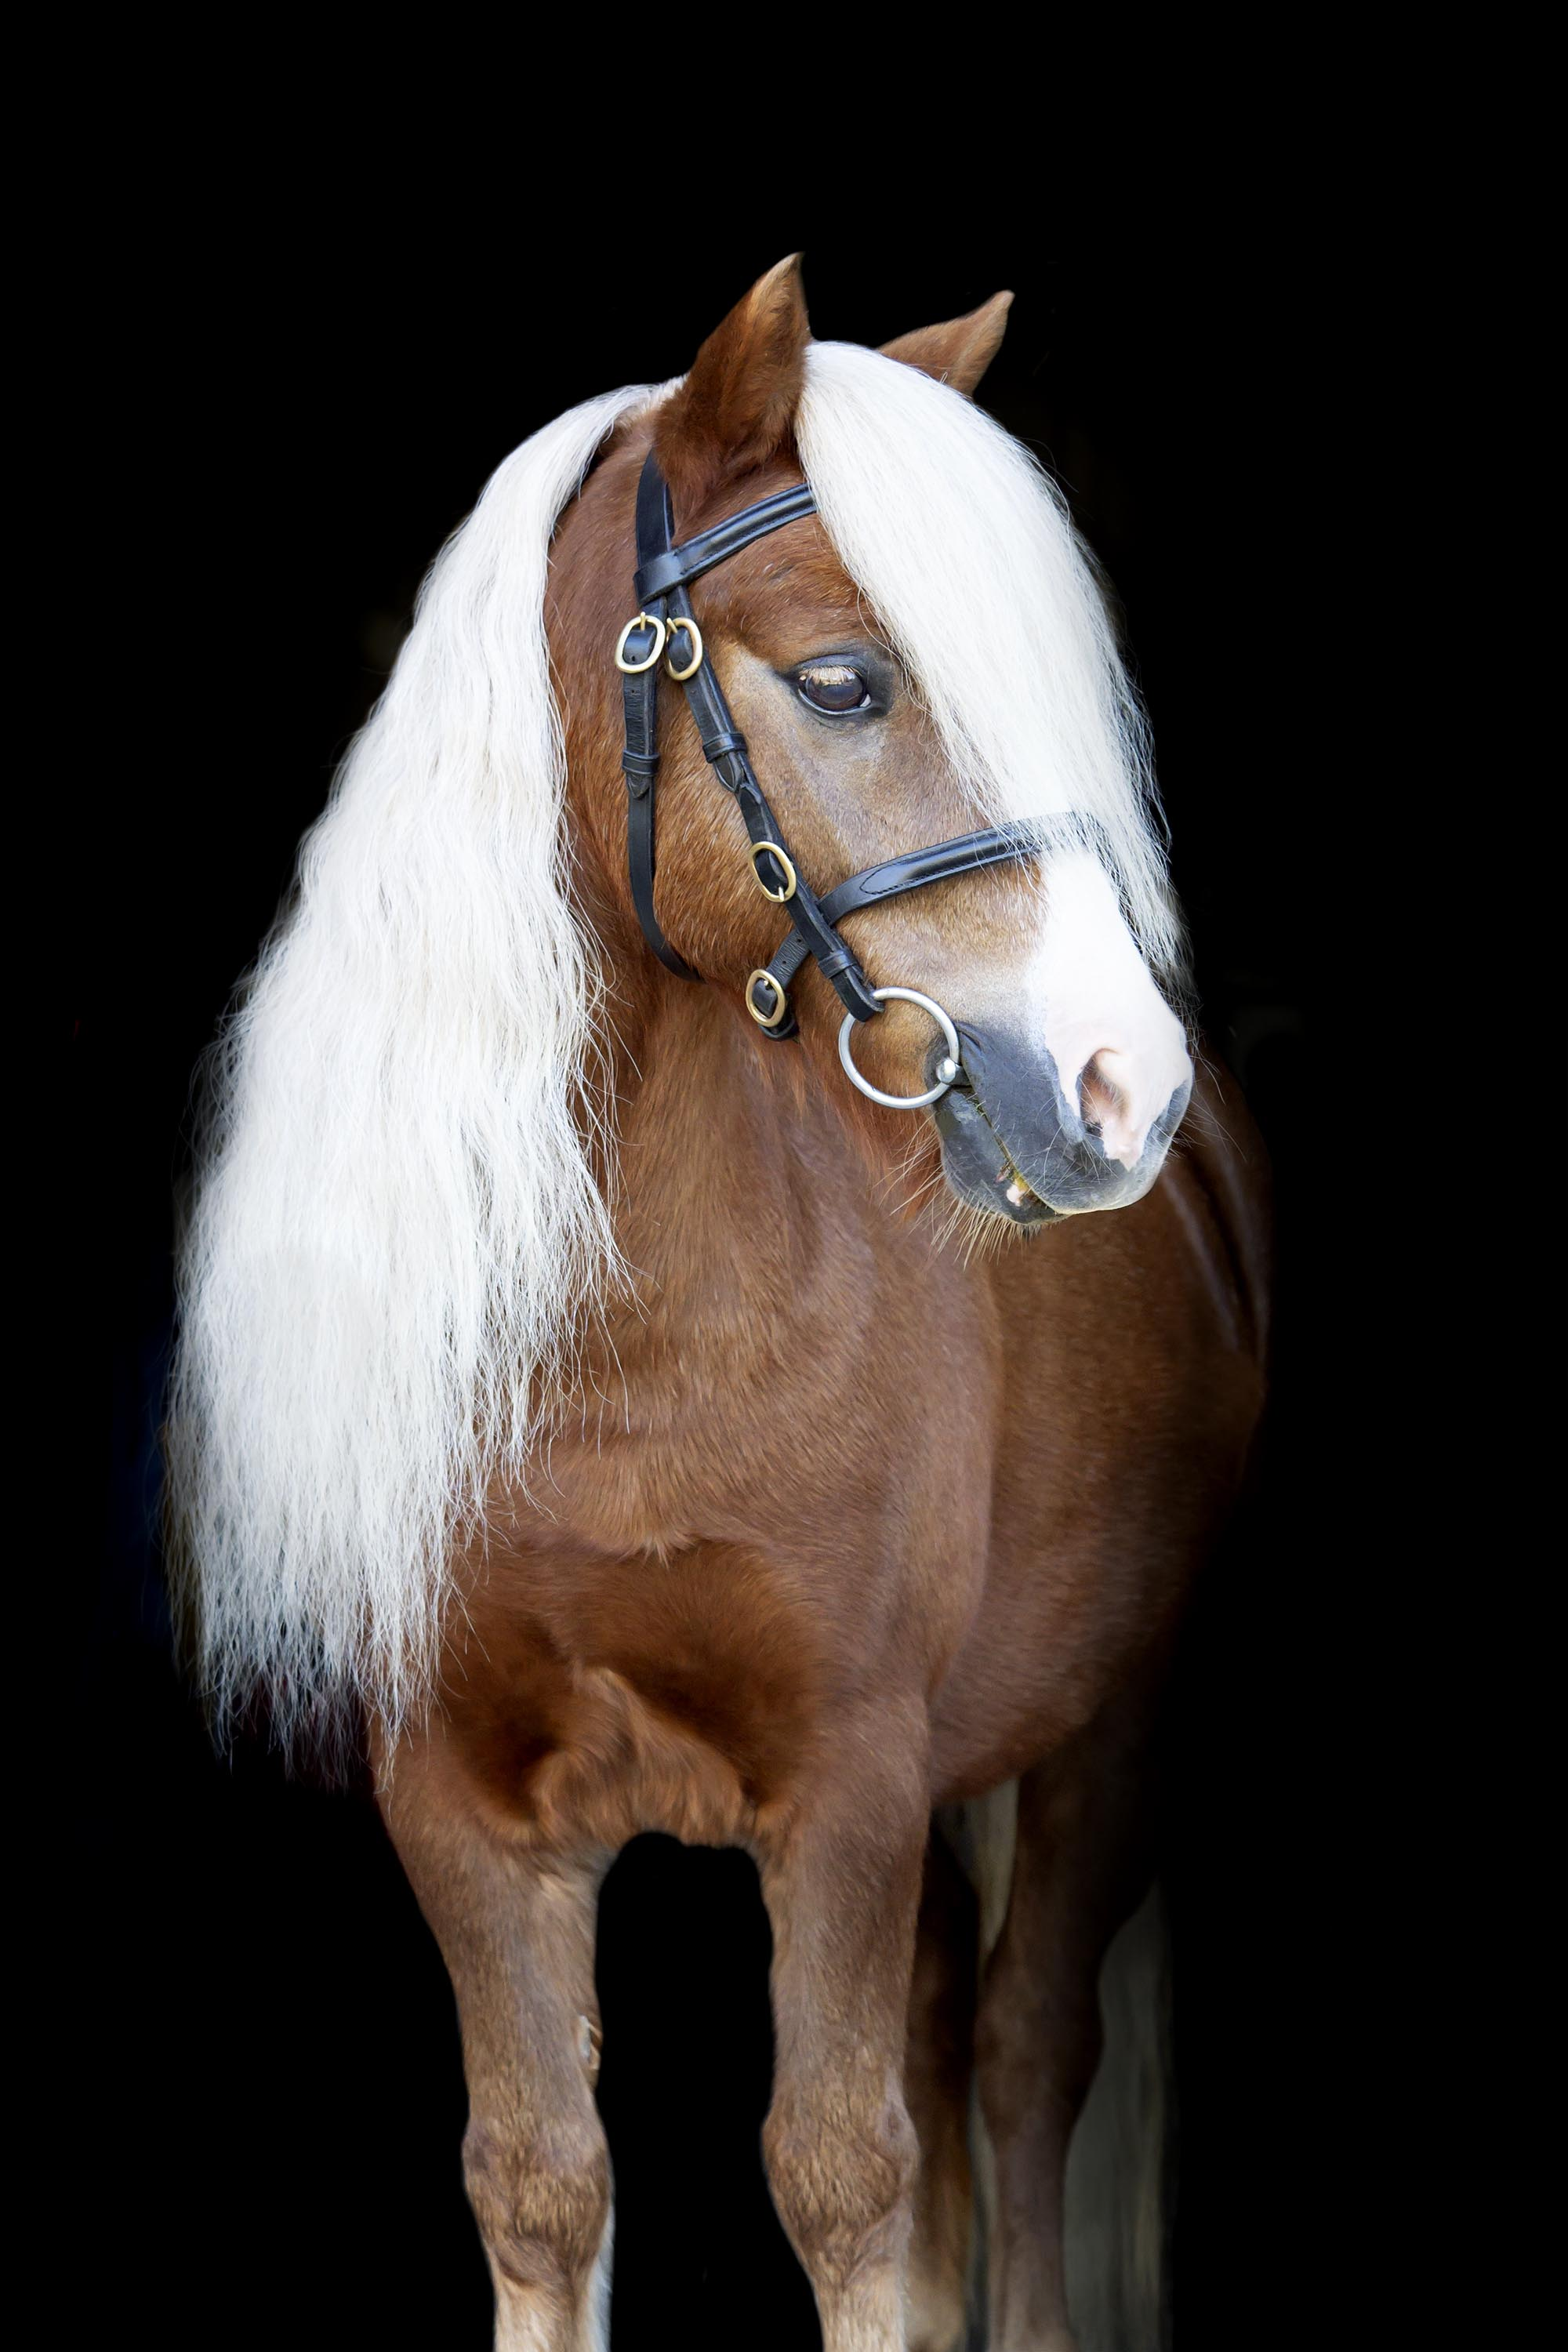 horse-equine-photography-sam-goodwin.jpg